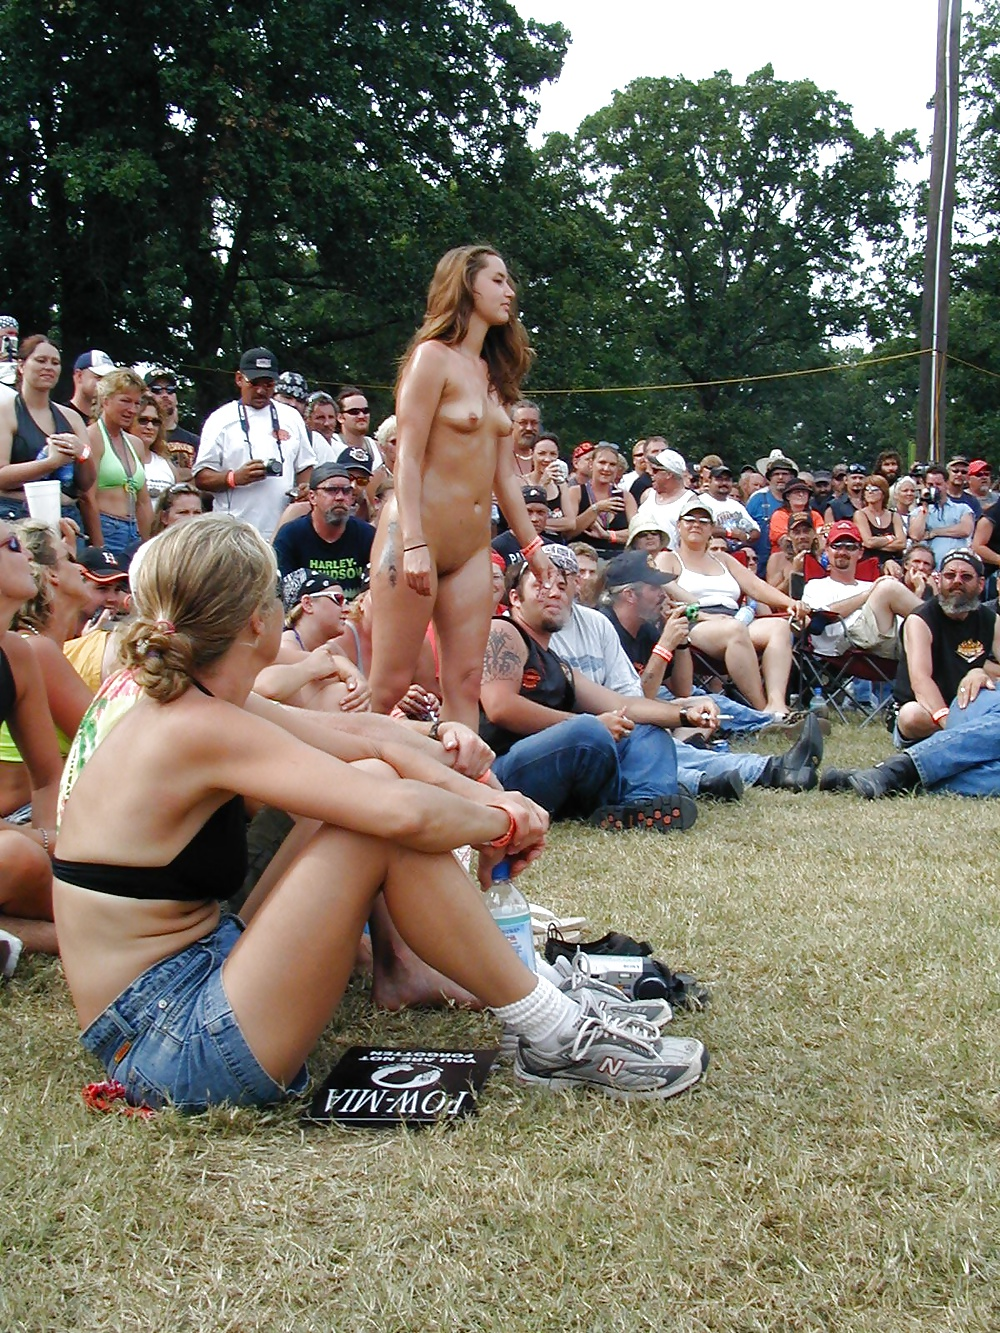 Extreme (public) nudity situations #40688156